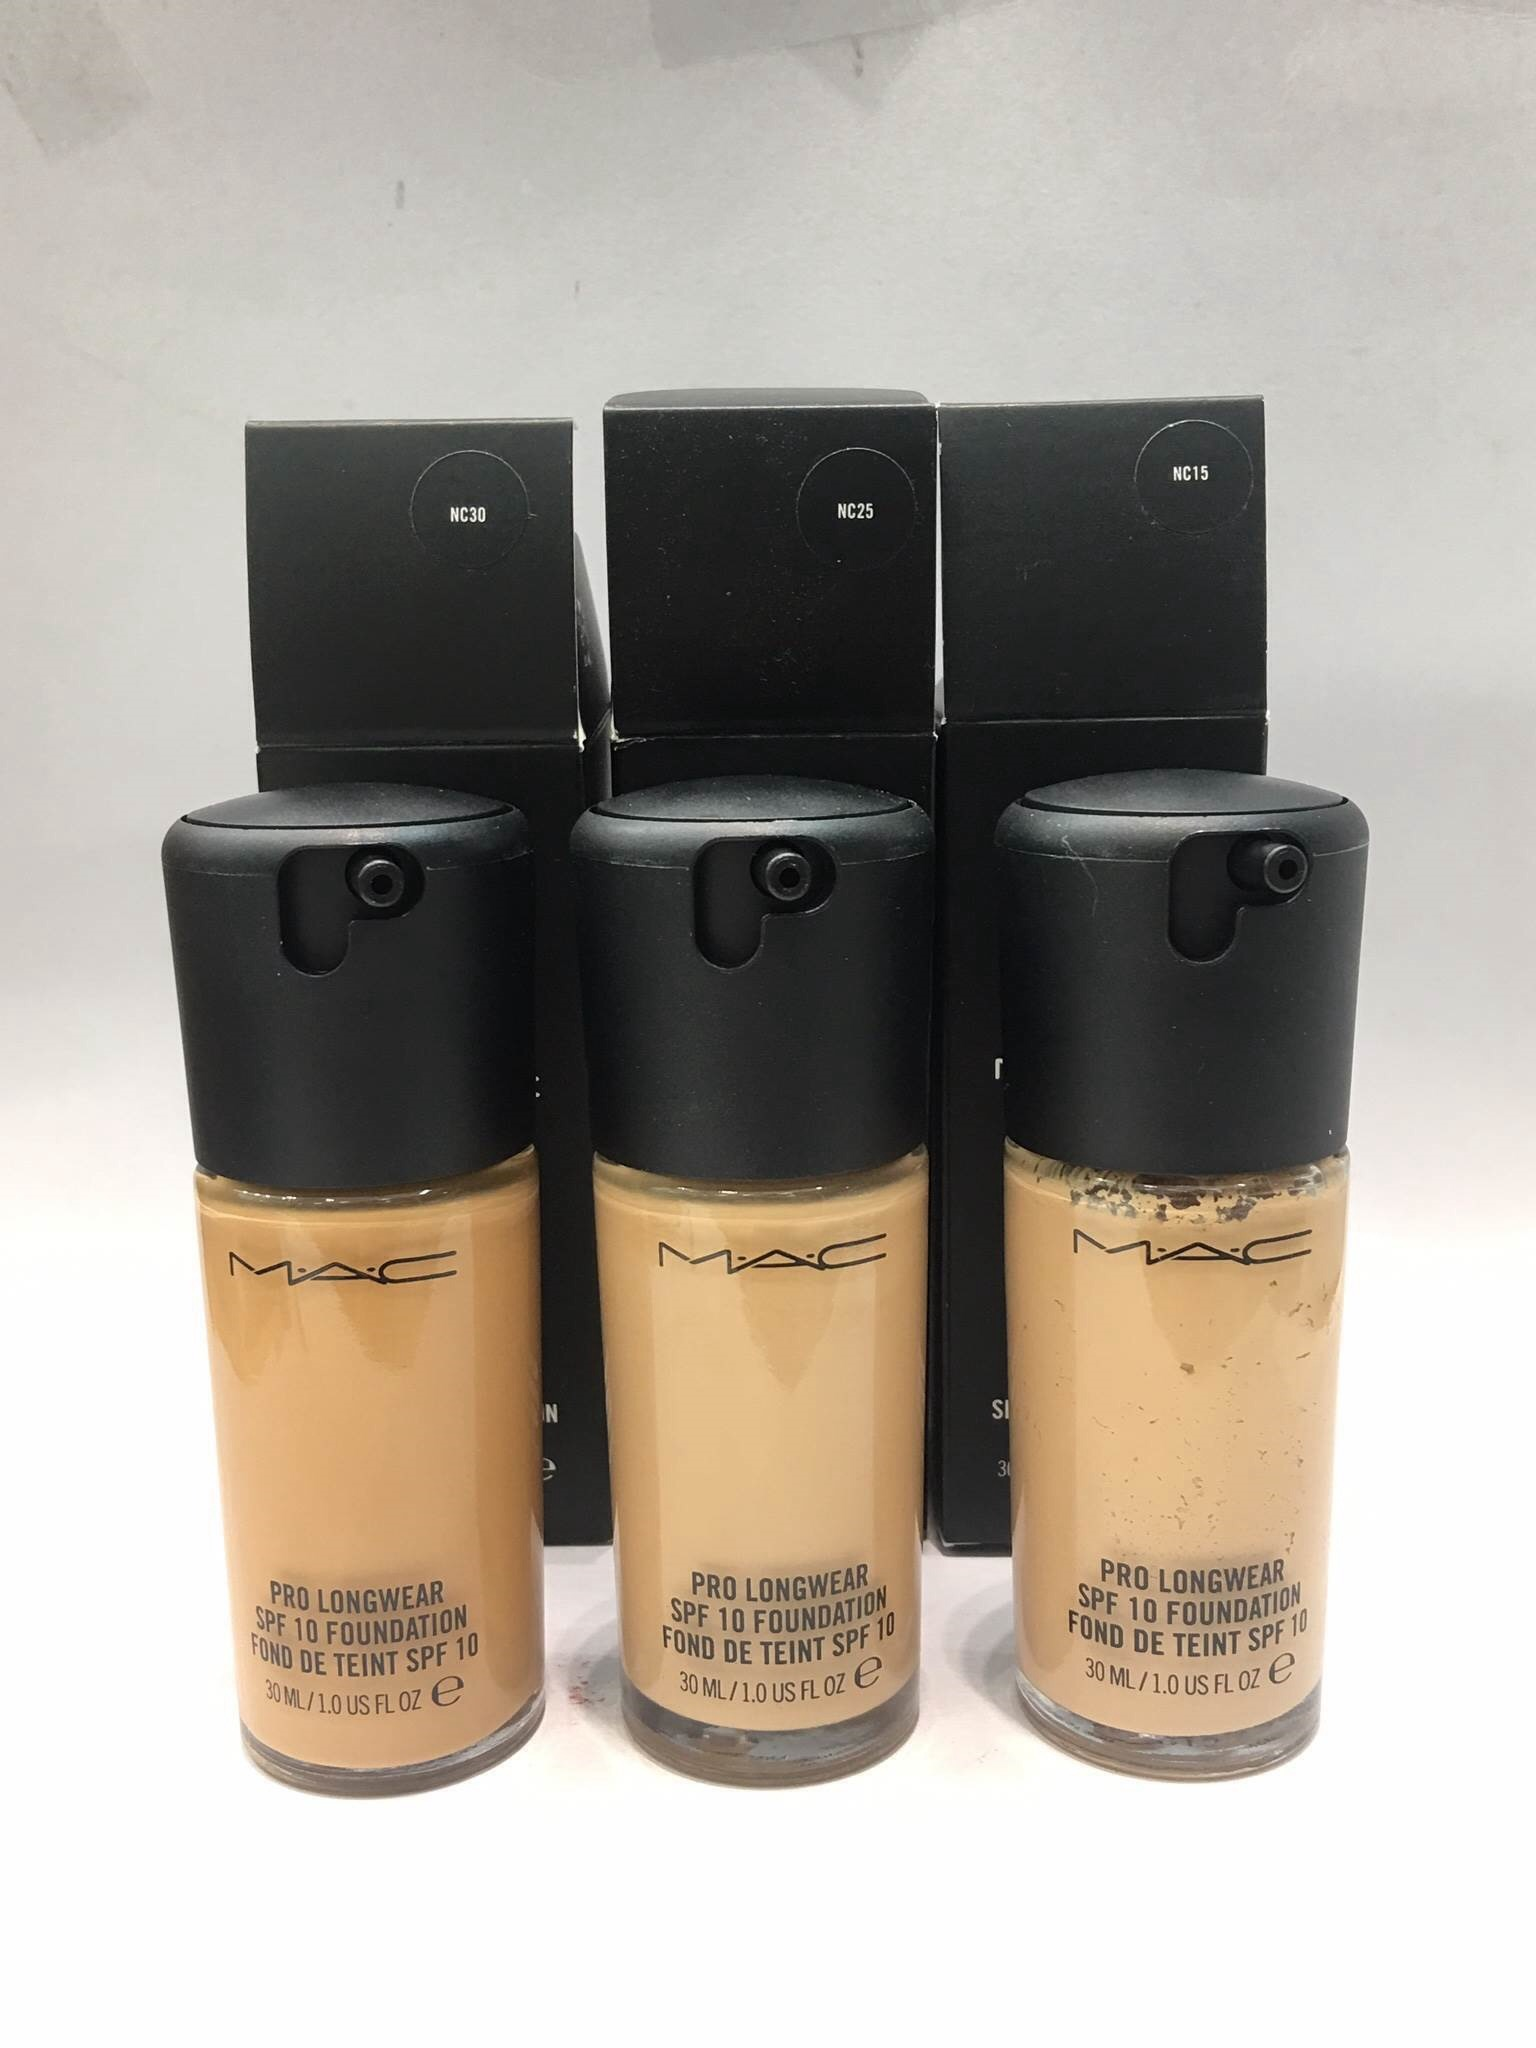 #MAC Pro Longwear SPF10 Foundation ขนาด 30 ml.